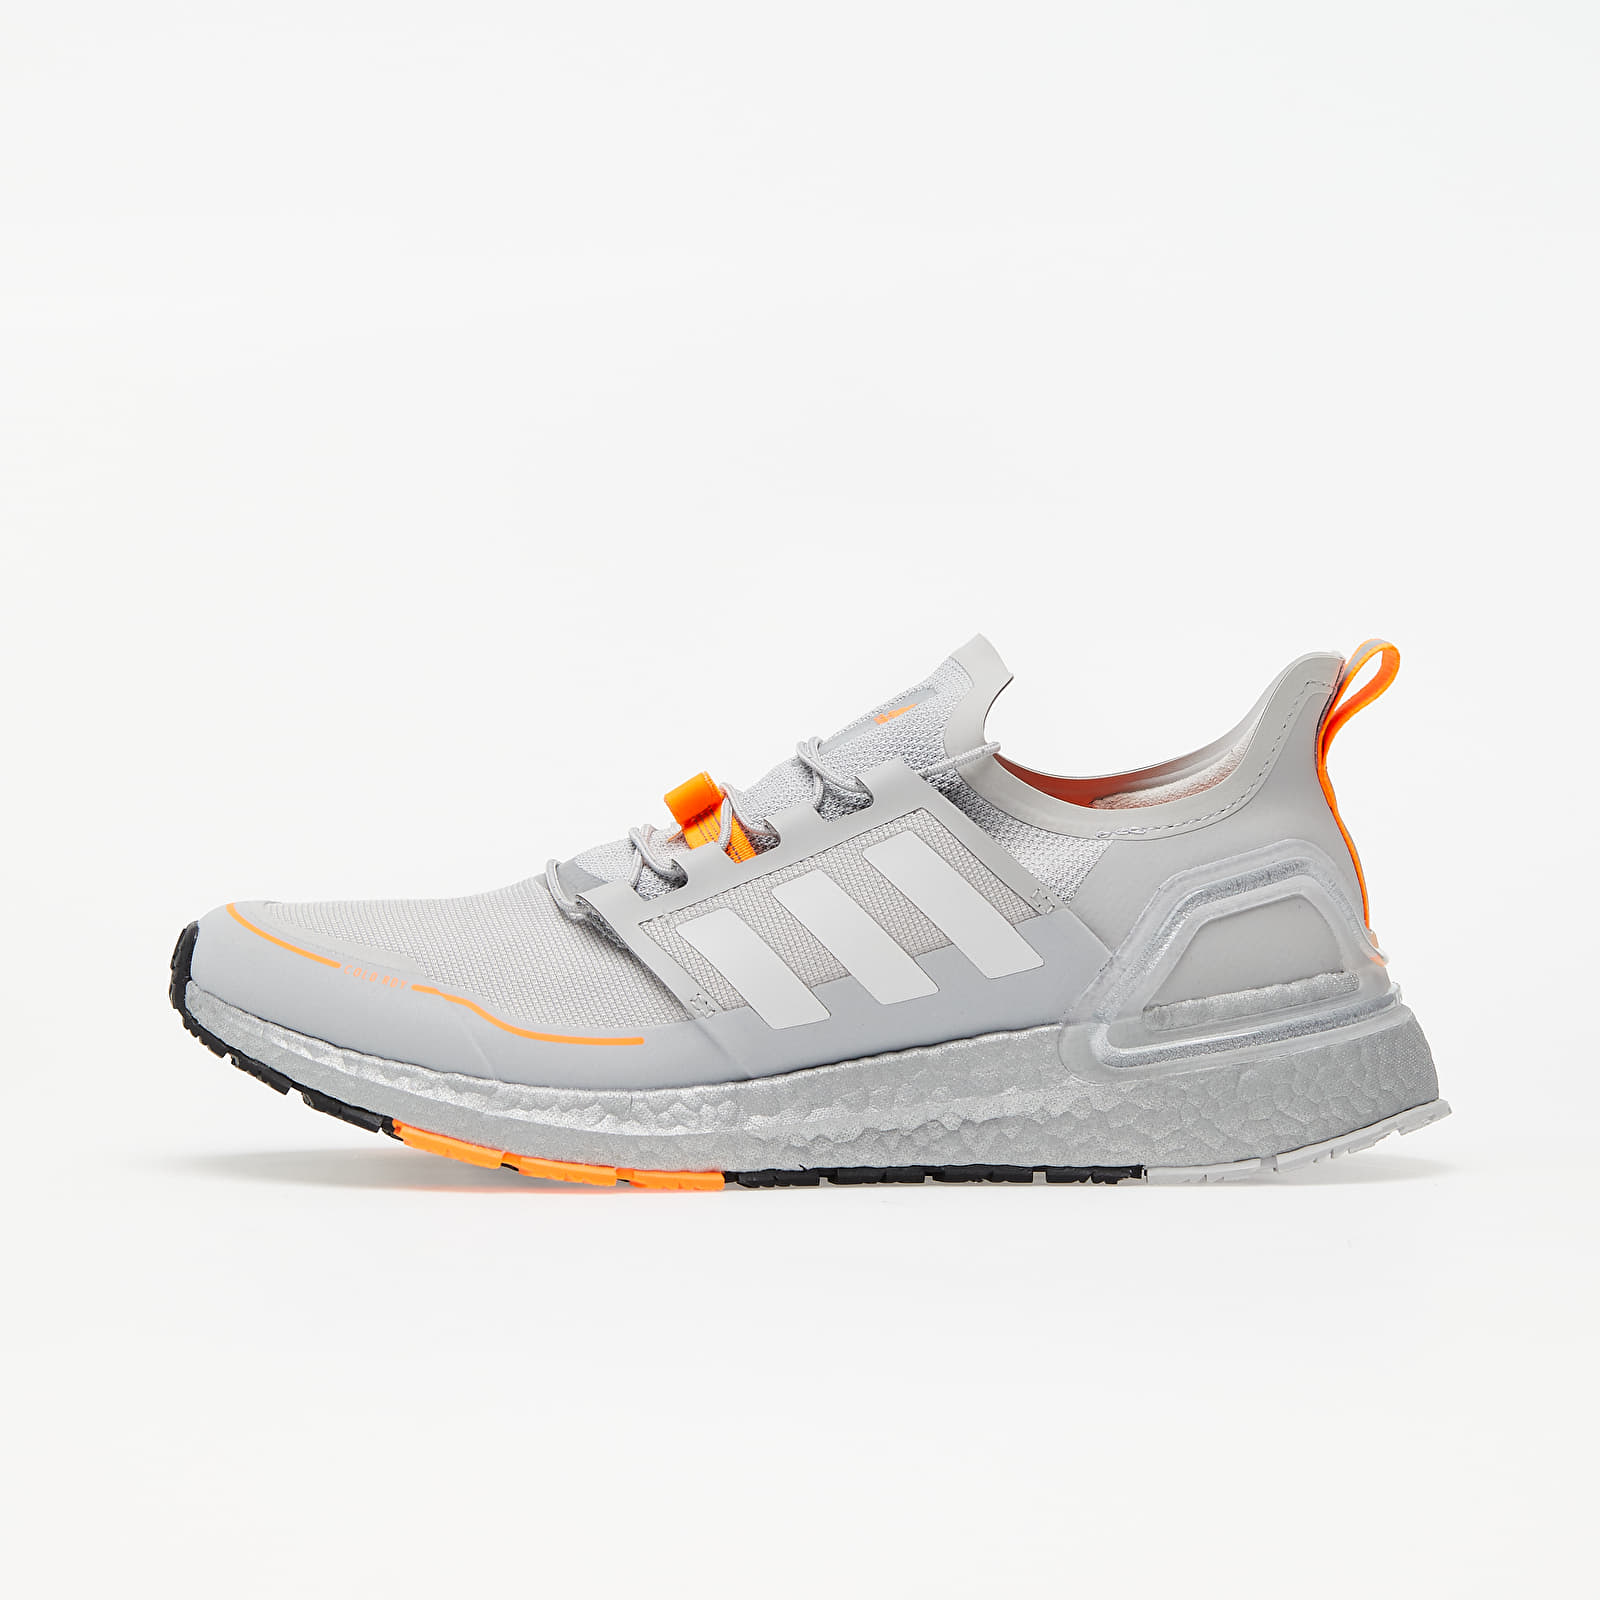 Men's shoes adidas UltraBOOST COLD.RDY Grey Two/ Ftw White/ Signature Orange